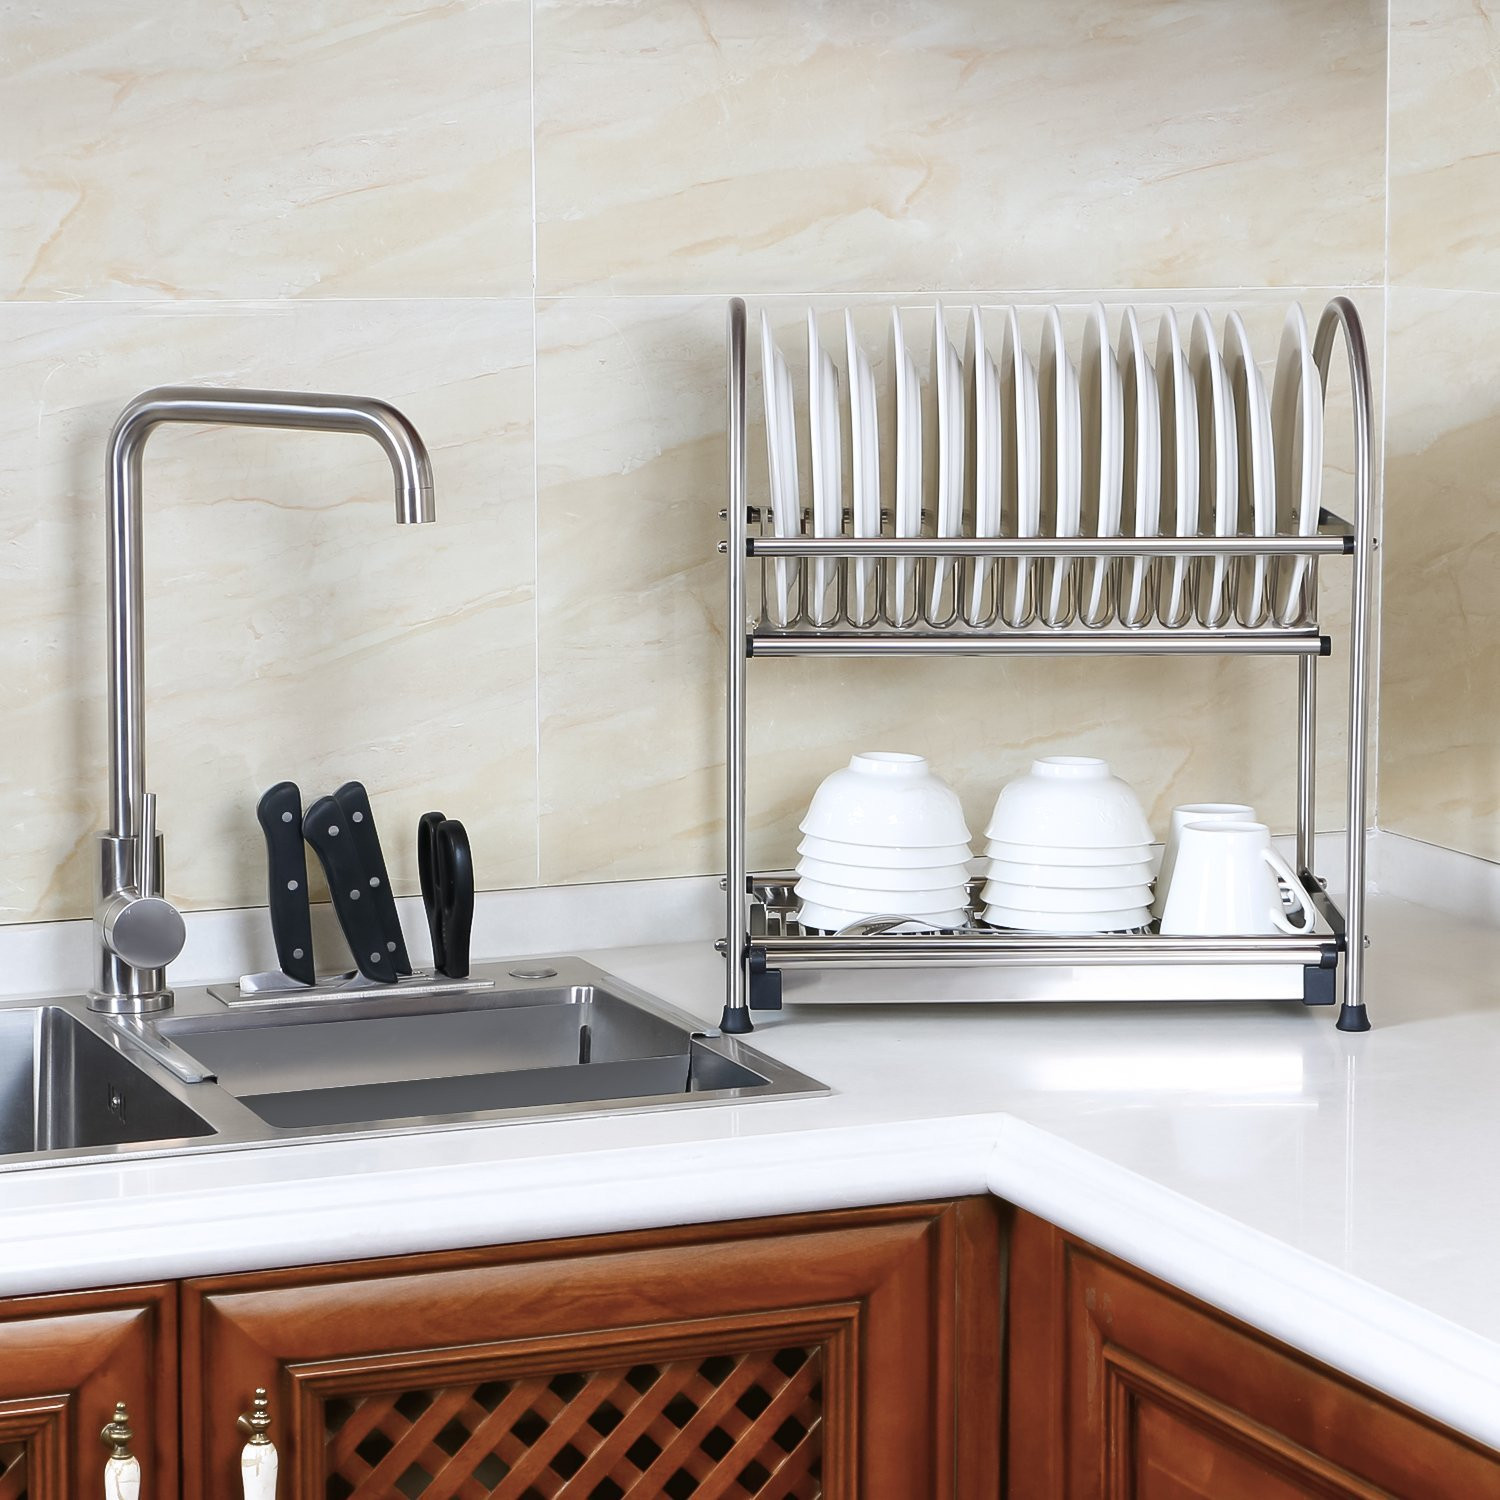 Lifewit 2 Tier Dish Rack× 1. Working Gloves × 1. Introduction × 1